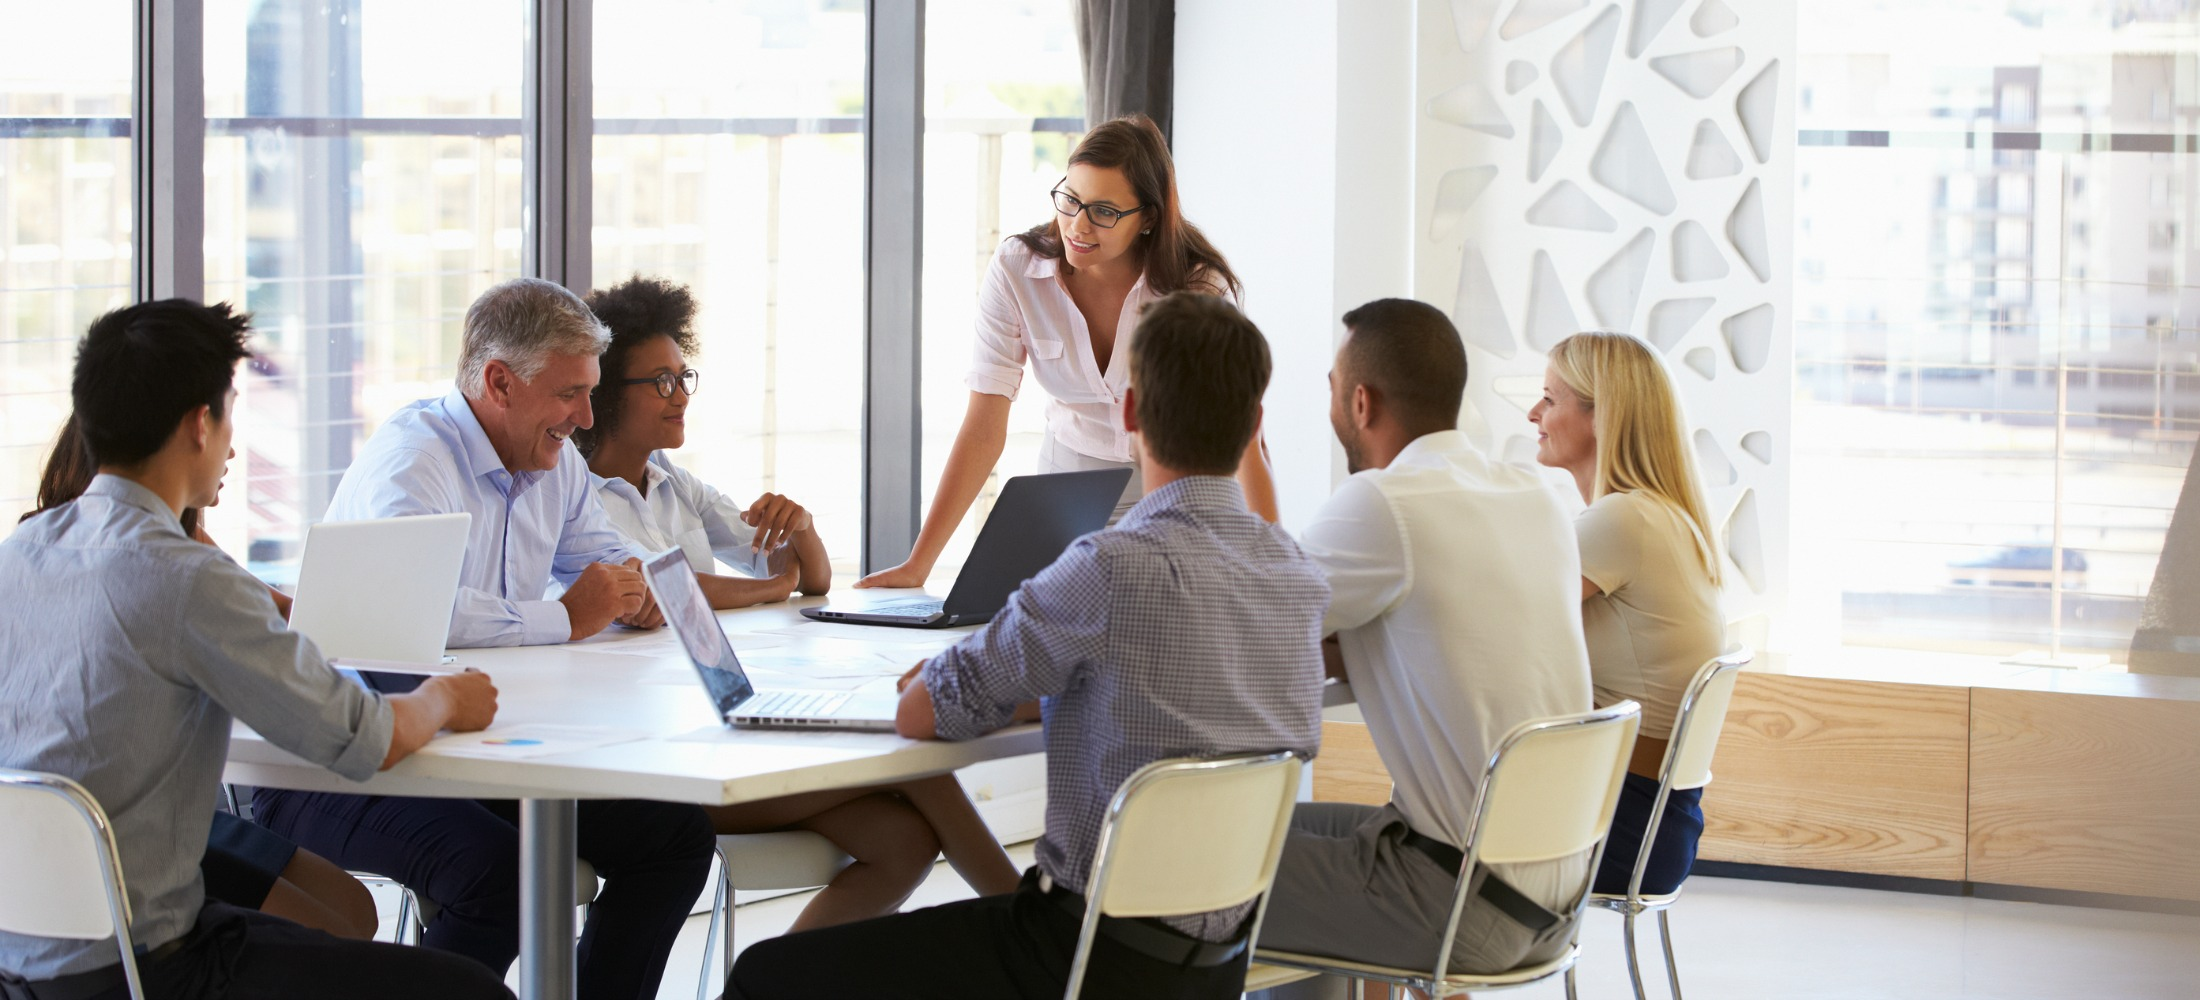 The Top 5 Sales Coaching Challenges – And How to Overcome Them